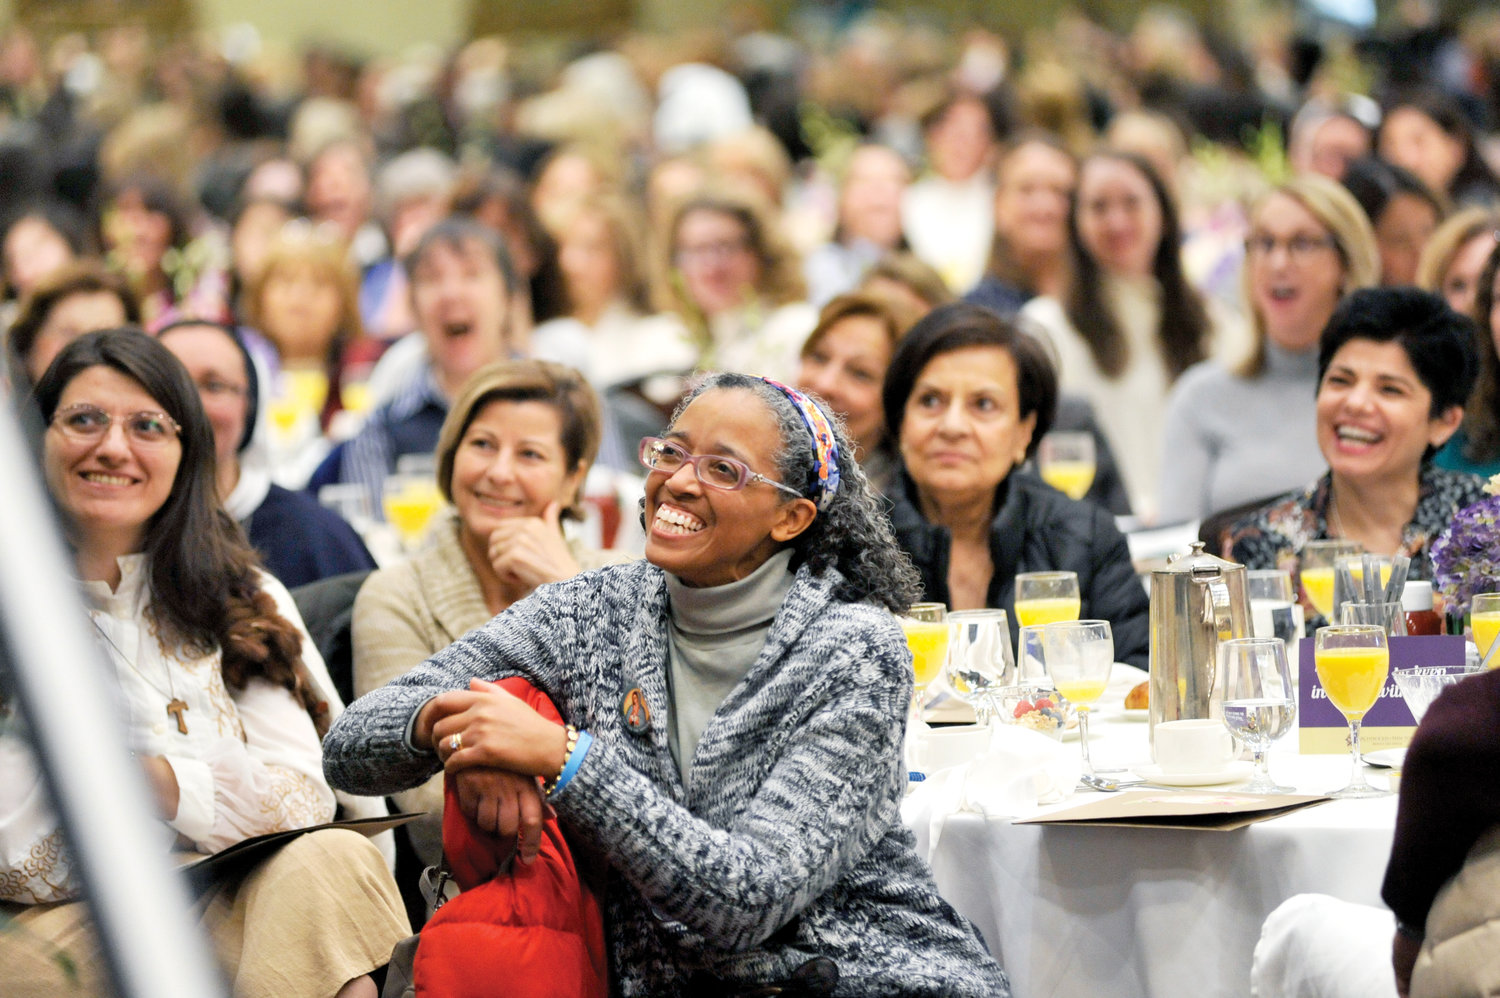 350 women in a filled banquet room listen to keynote speaker Sister Virginia Joy, S.V., at the Feminine Genius Brunch Nov. 16 at Hilton Westchester in Rye Brook.